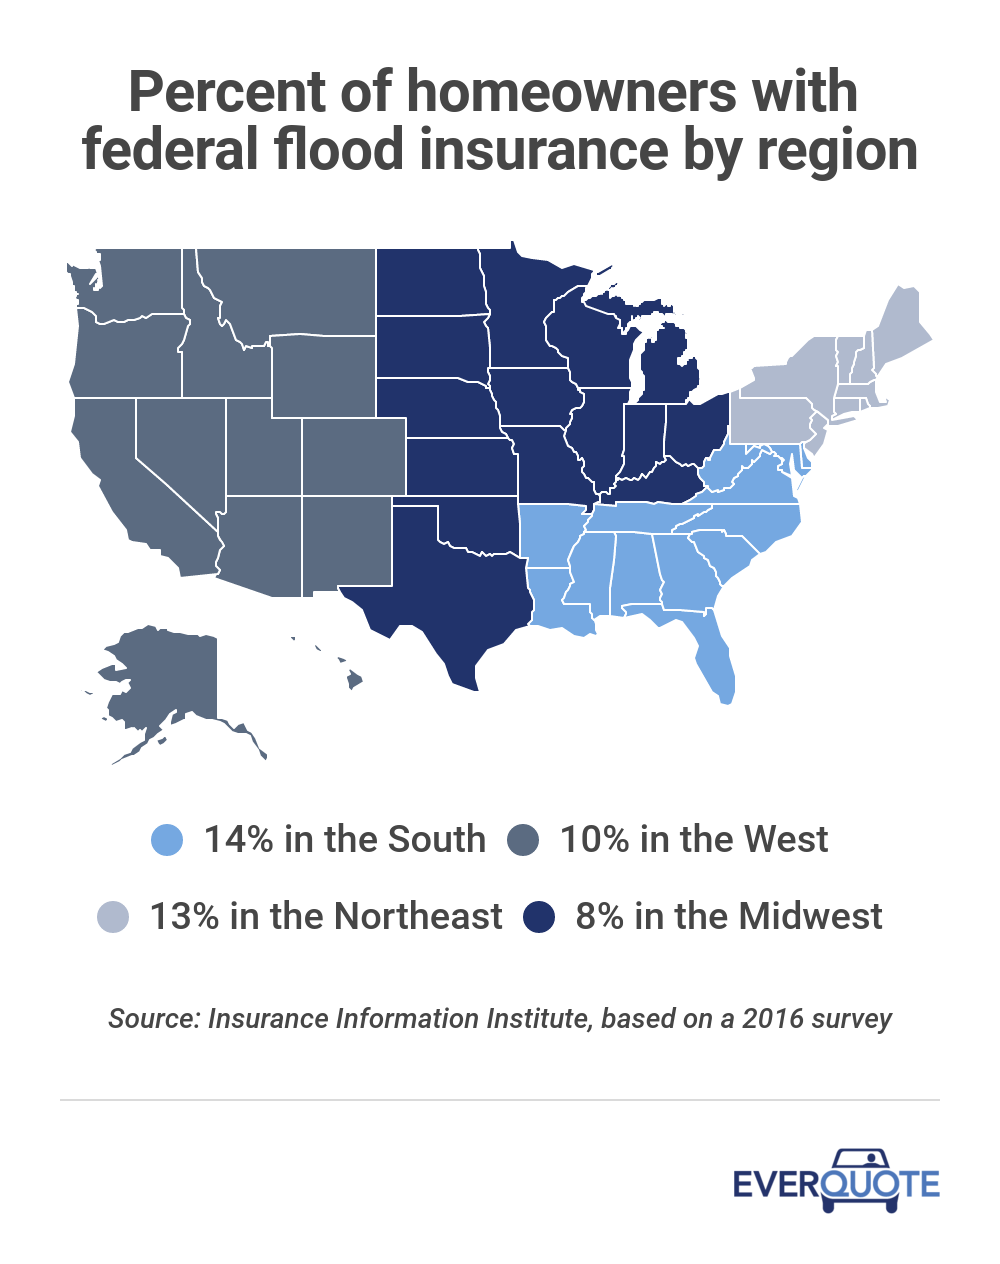 Flood insurance by region